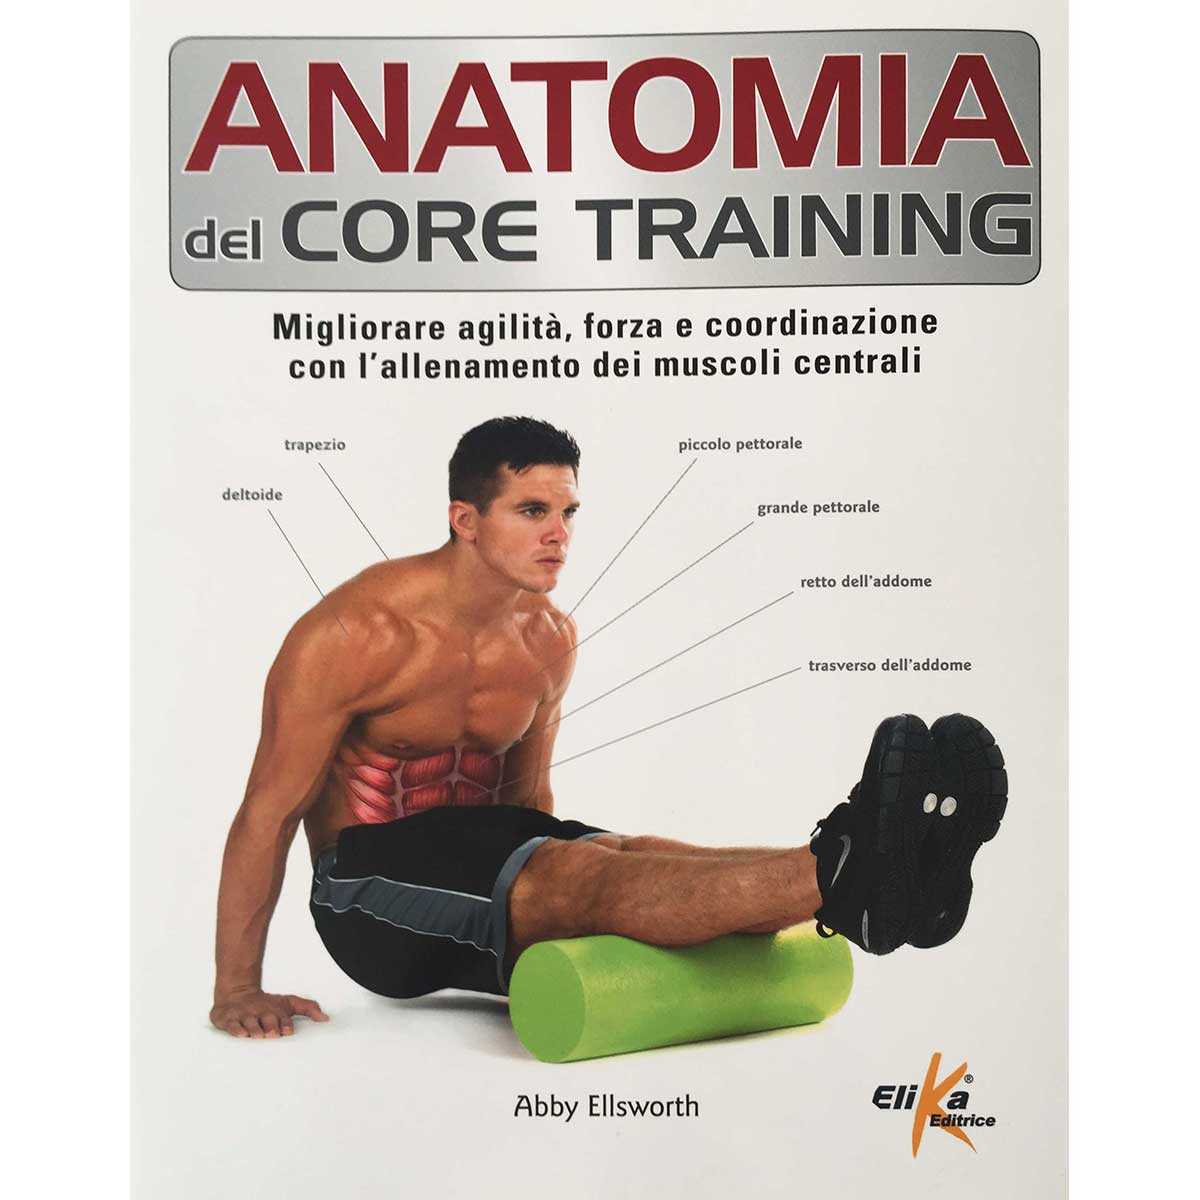 Libro Anatomia del Core Training